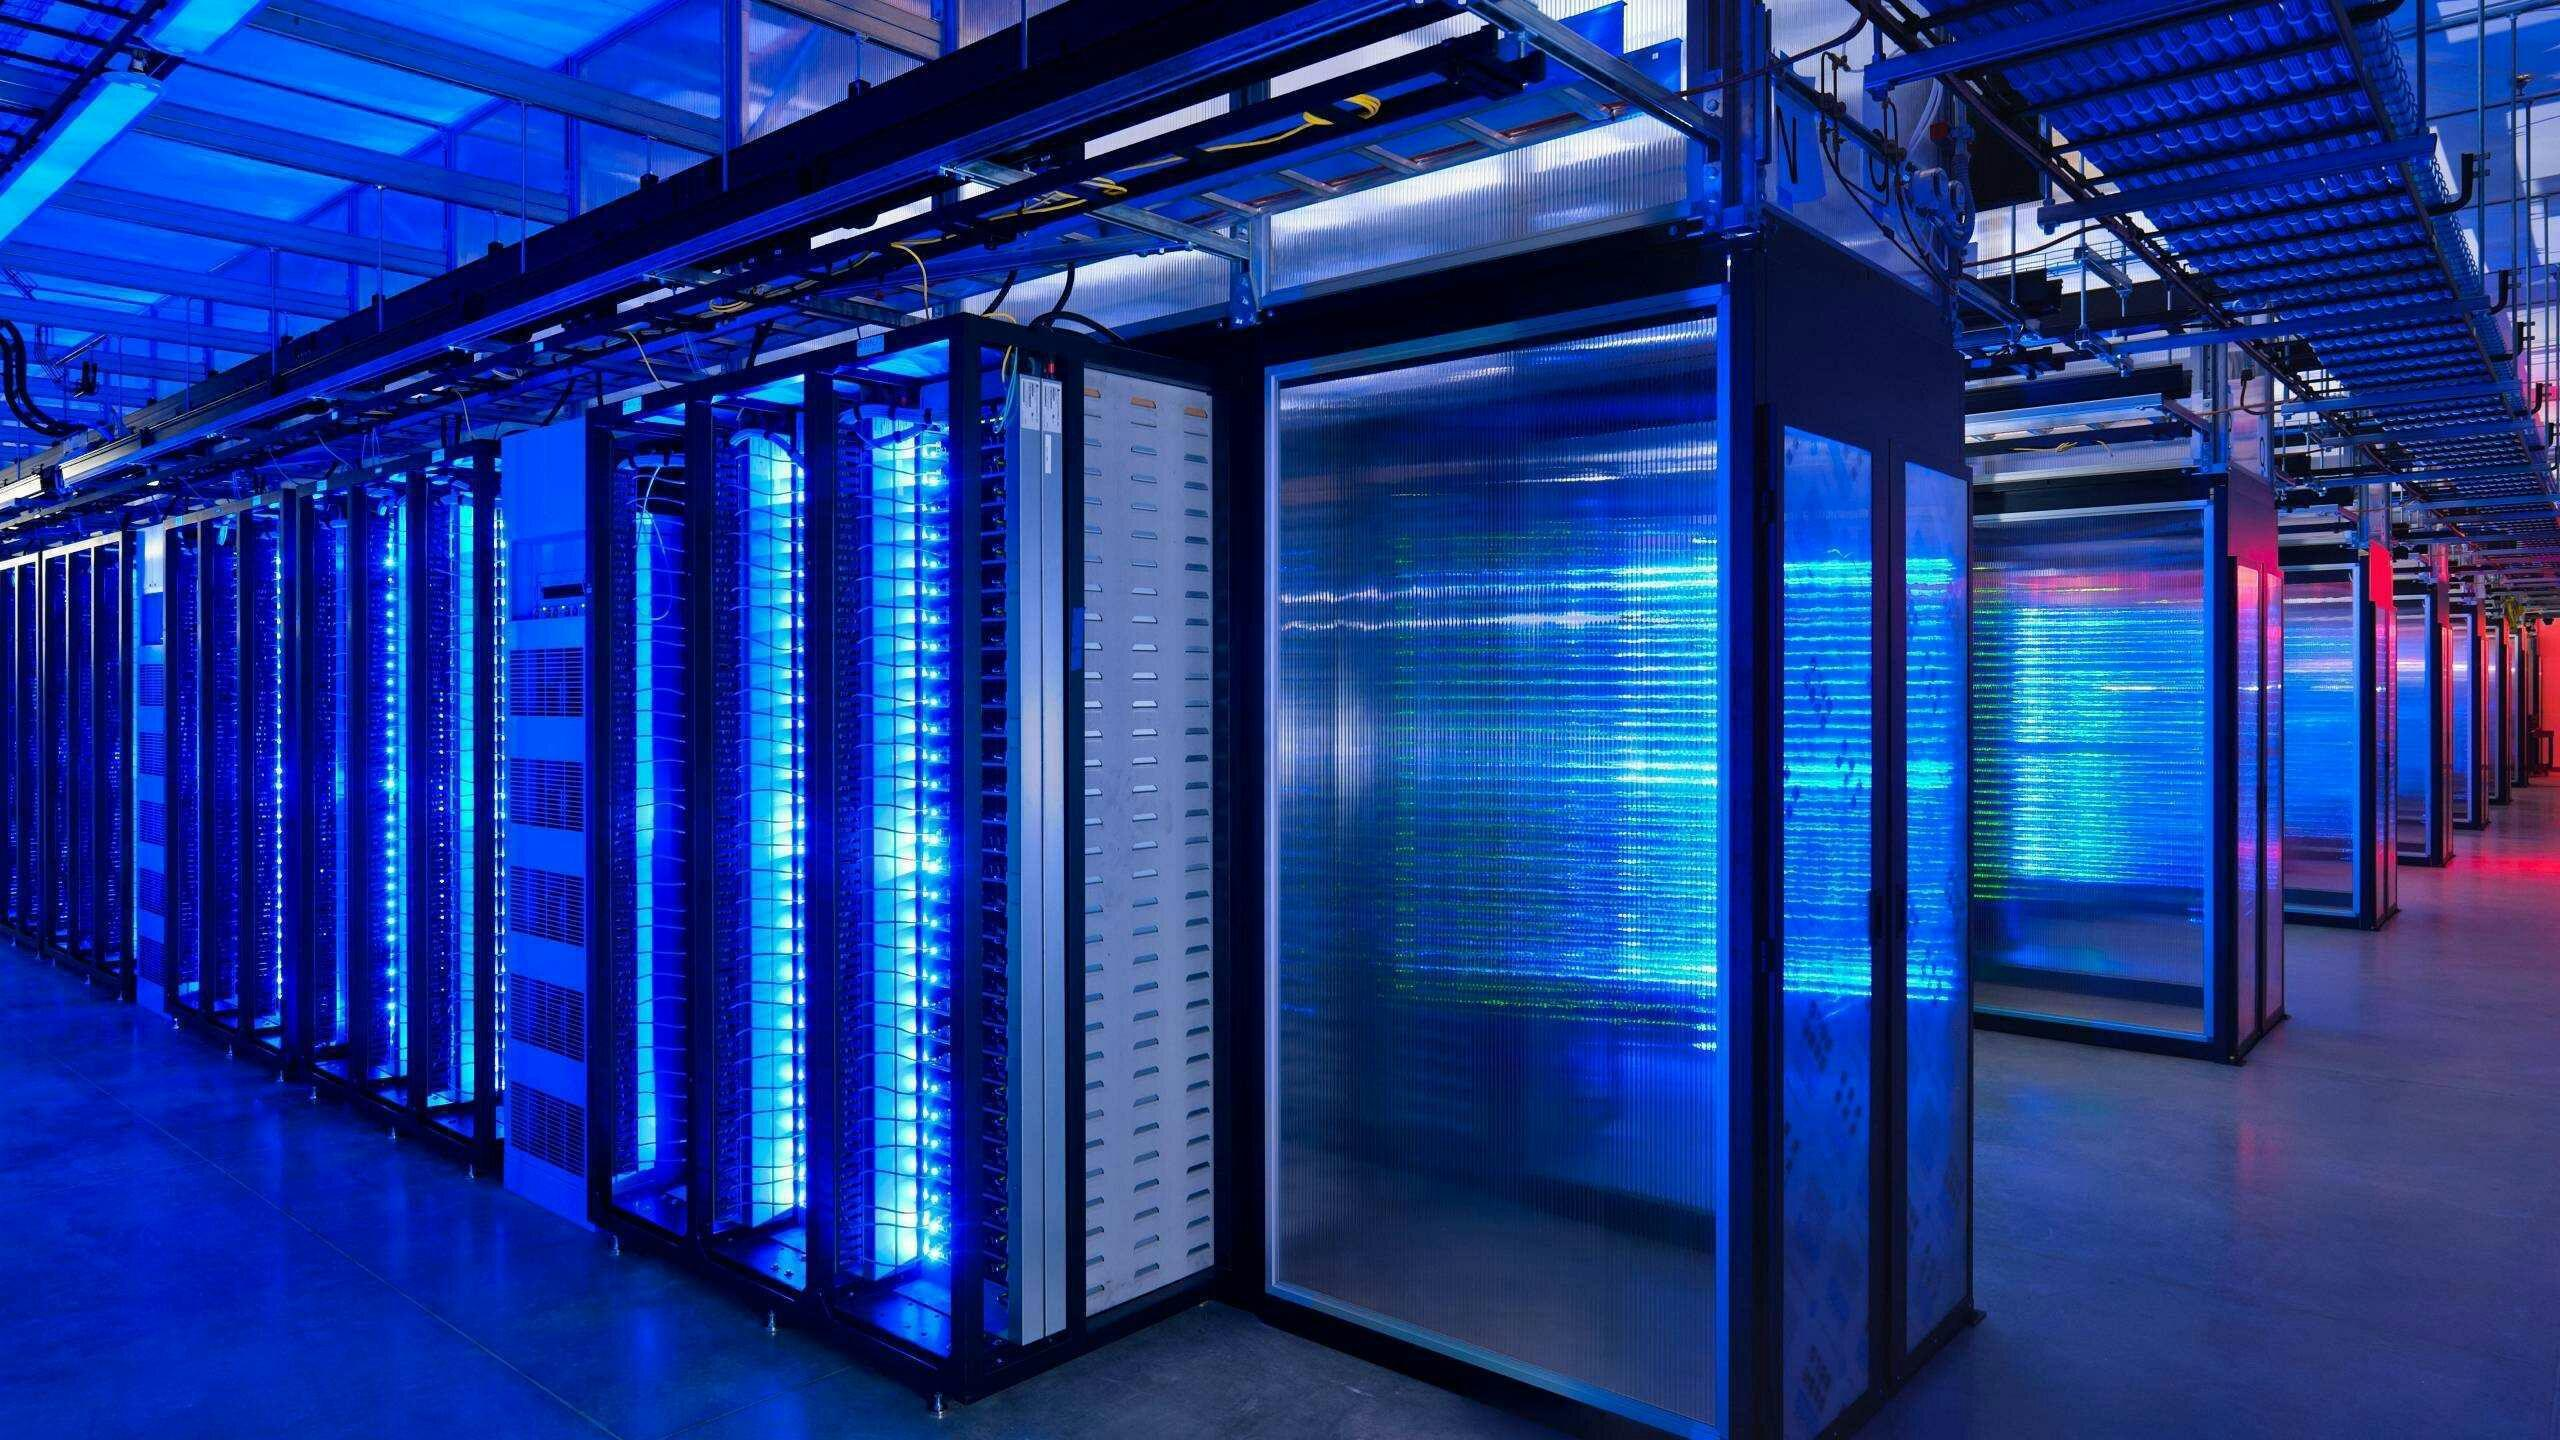 Indian_SuperComputer_technosports.co.in